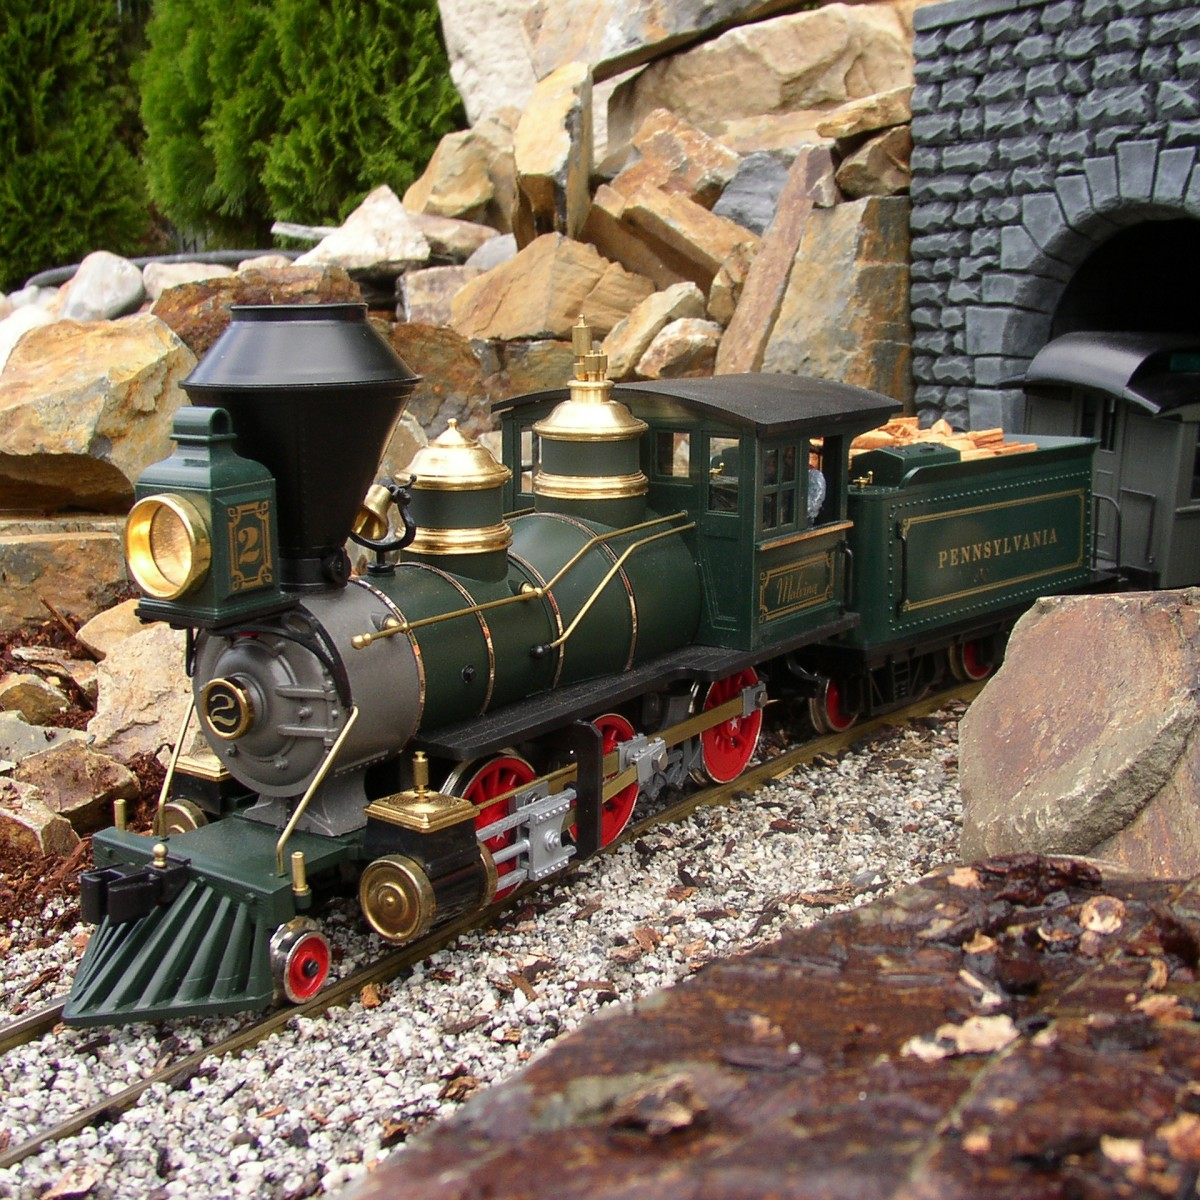 A model scale locomotive emerging from a stone mountain passage.